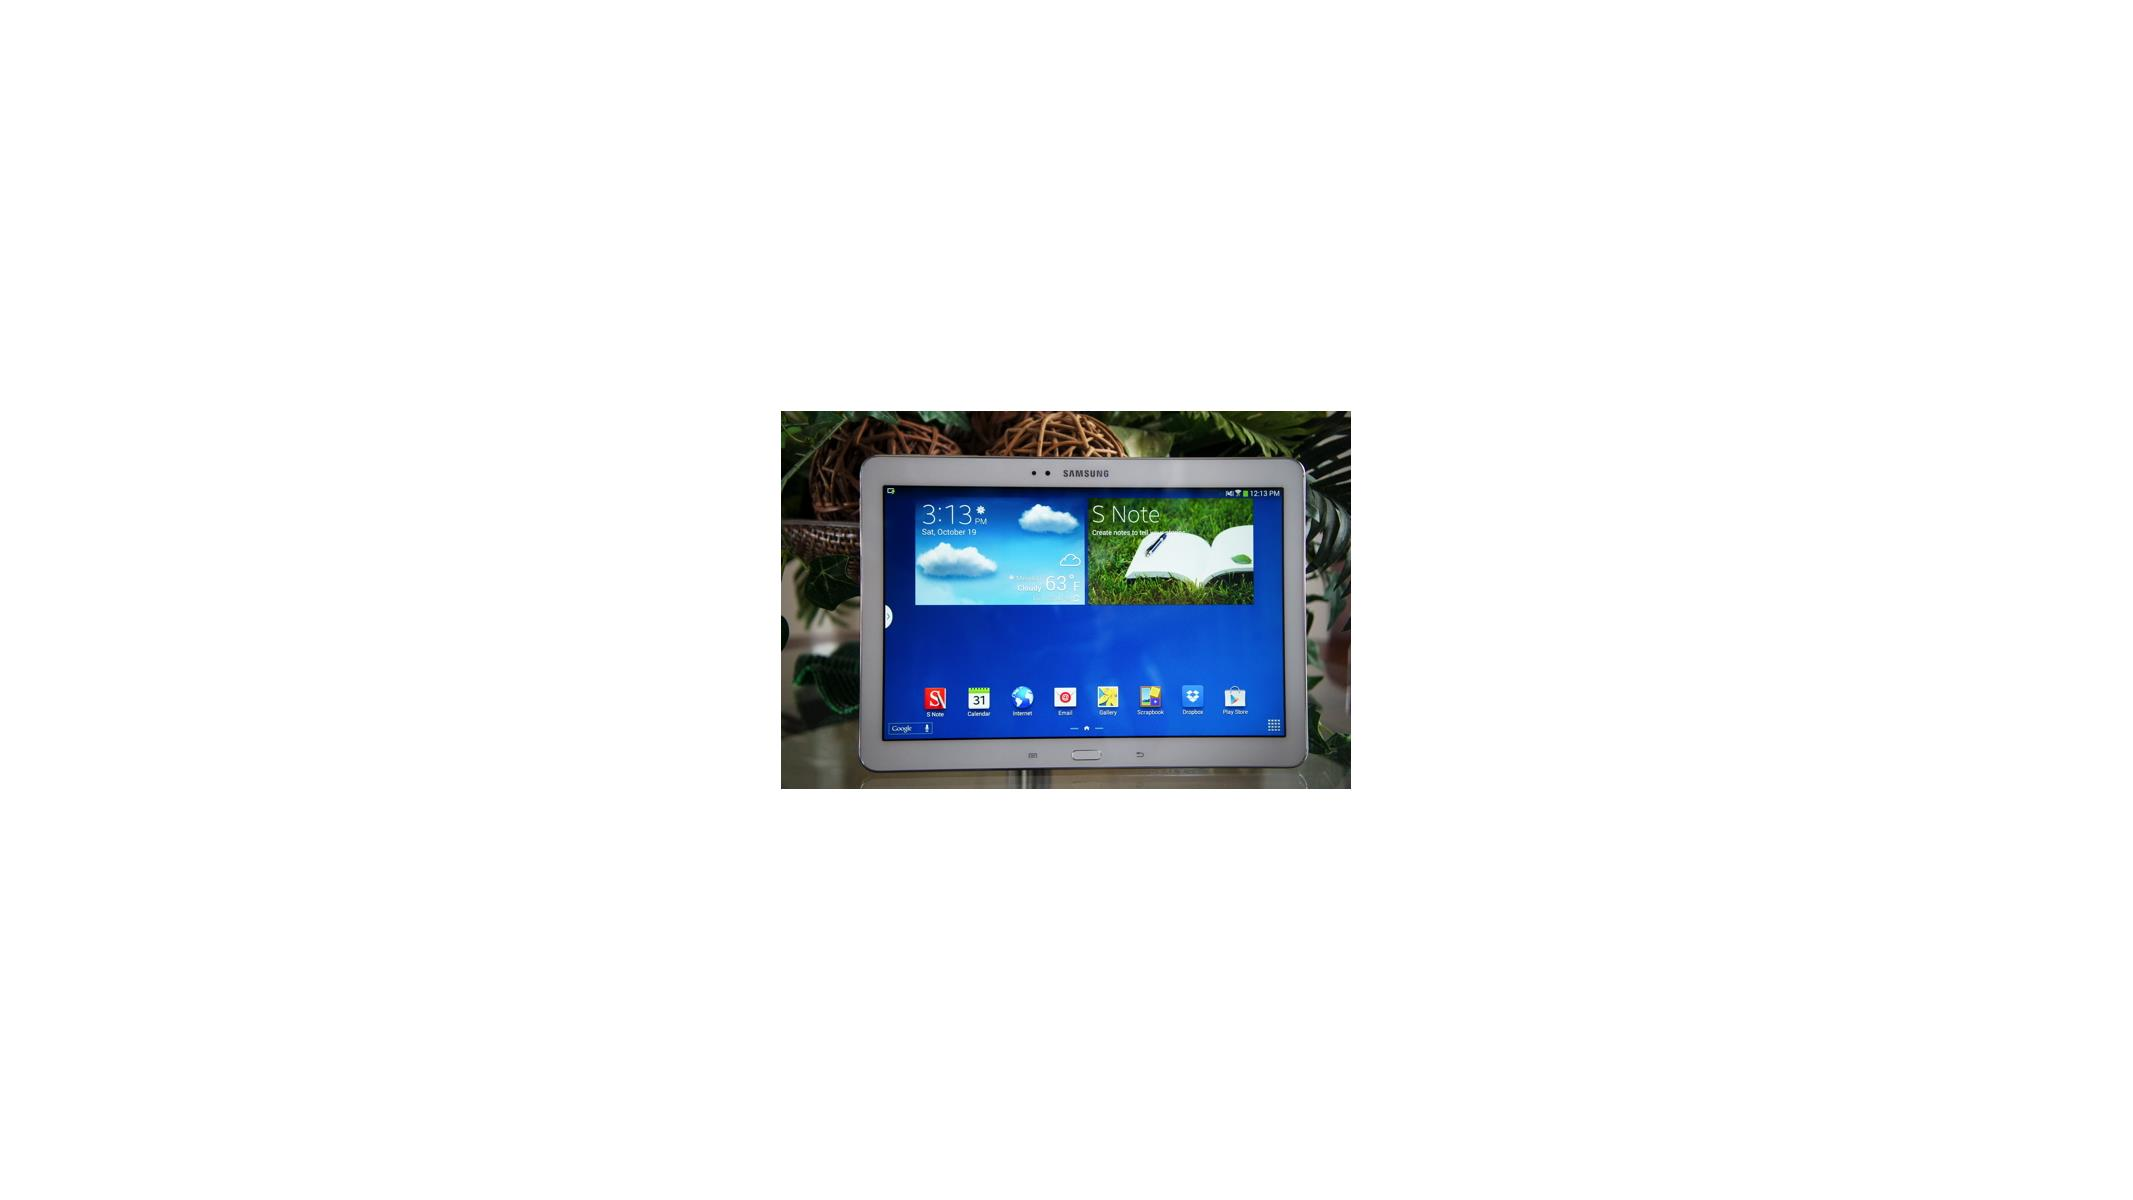 Samsung Galaxy Note 10 1 2014 Edition Tablet Review | HotHardware